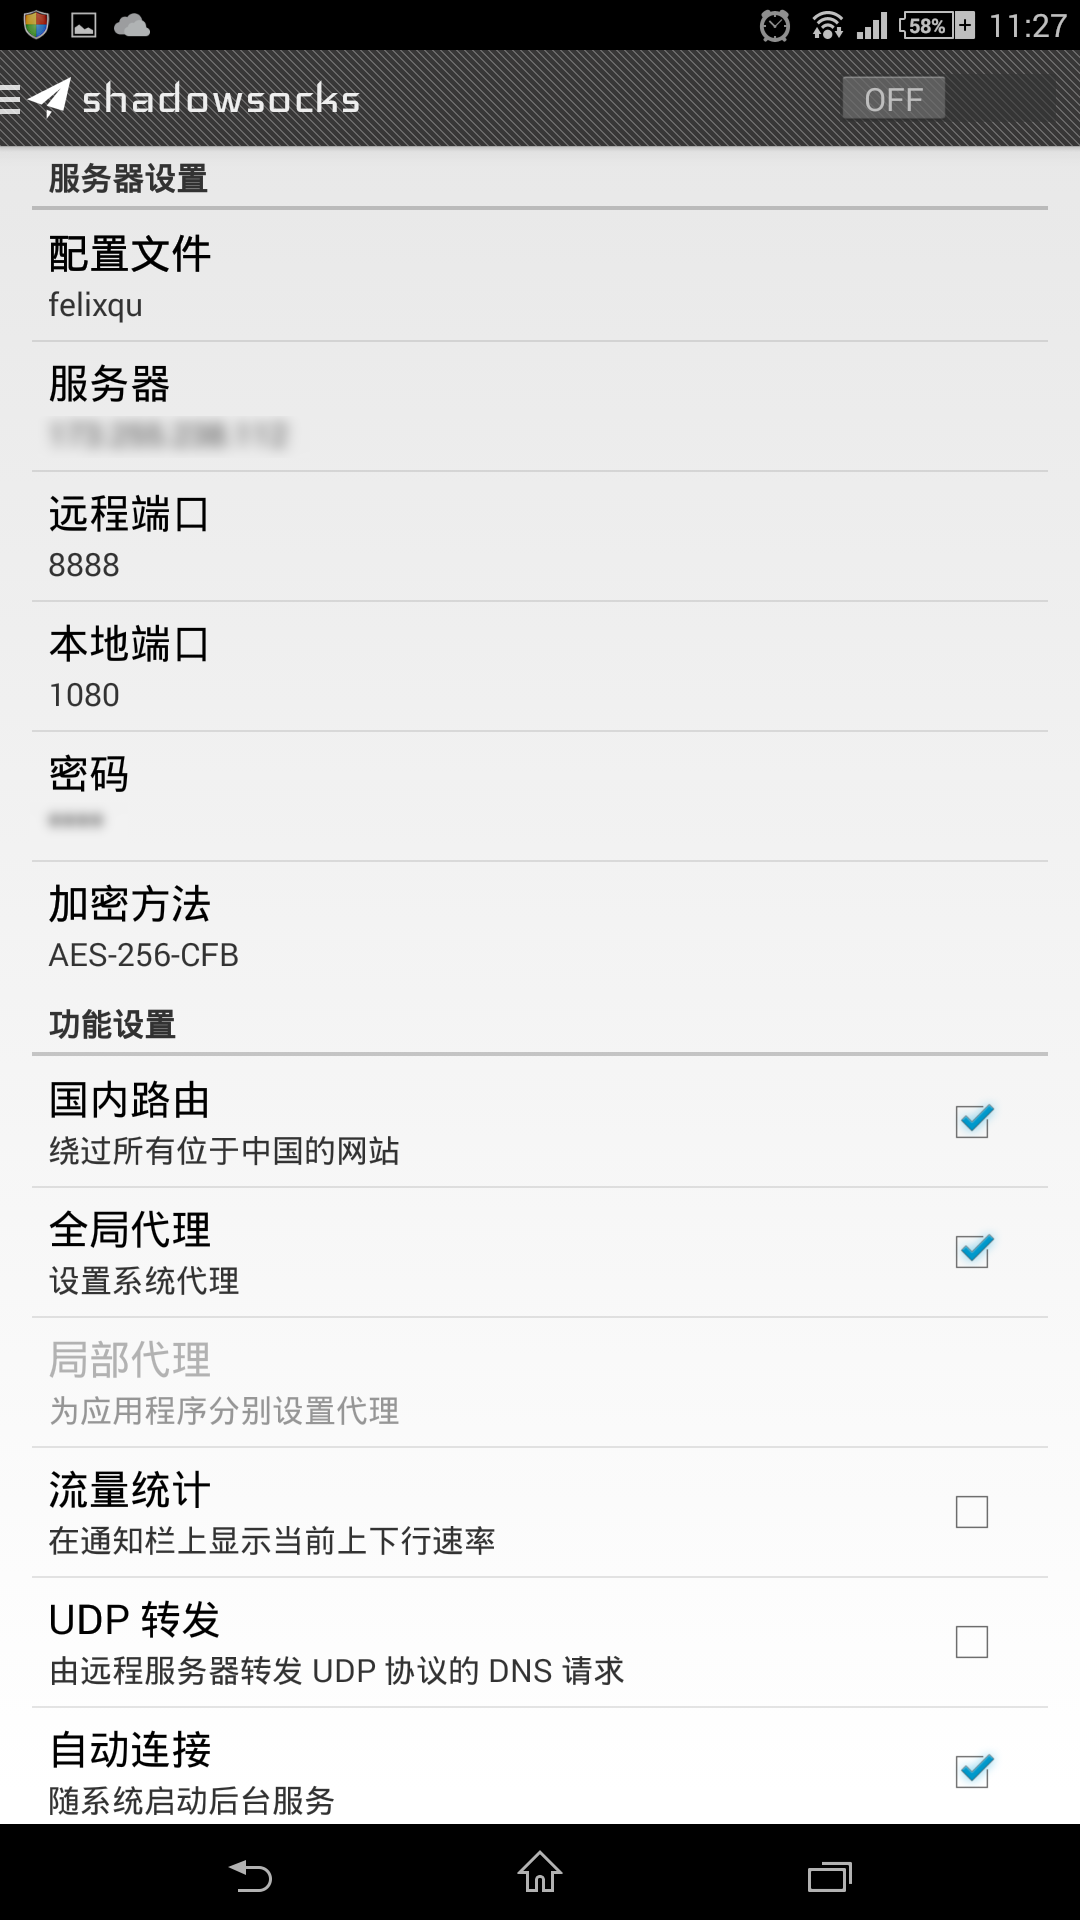 shadowsocks for android